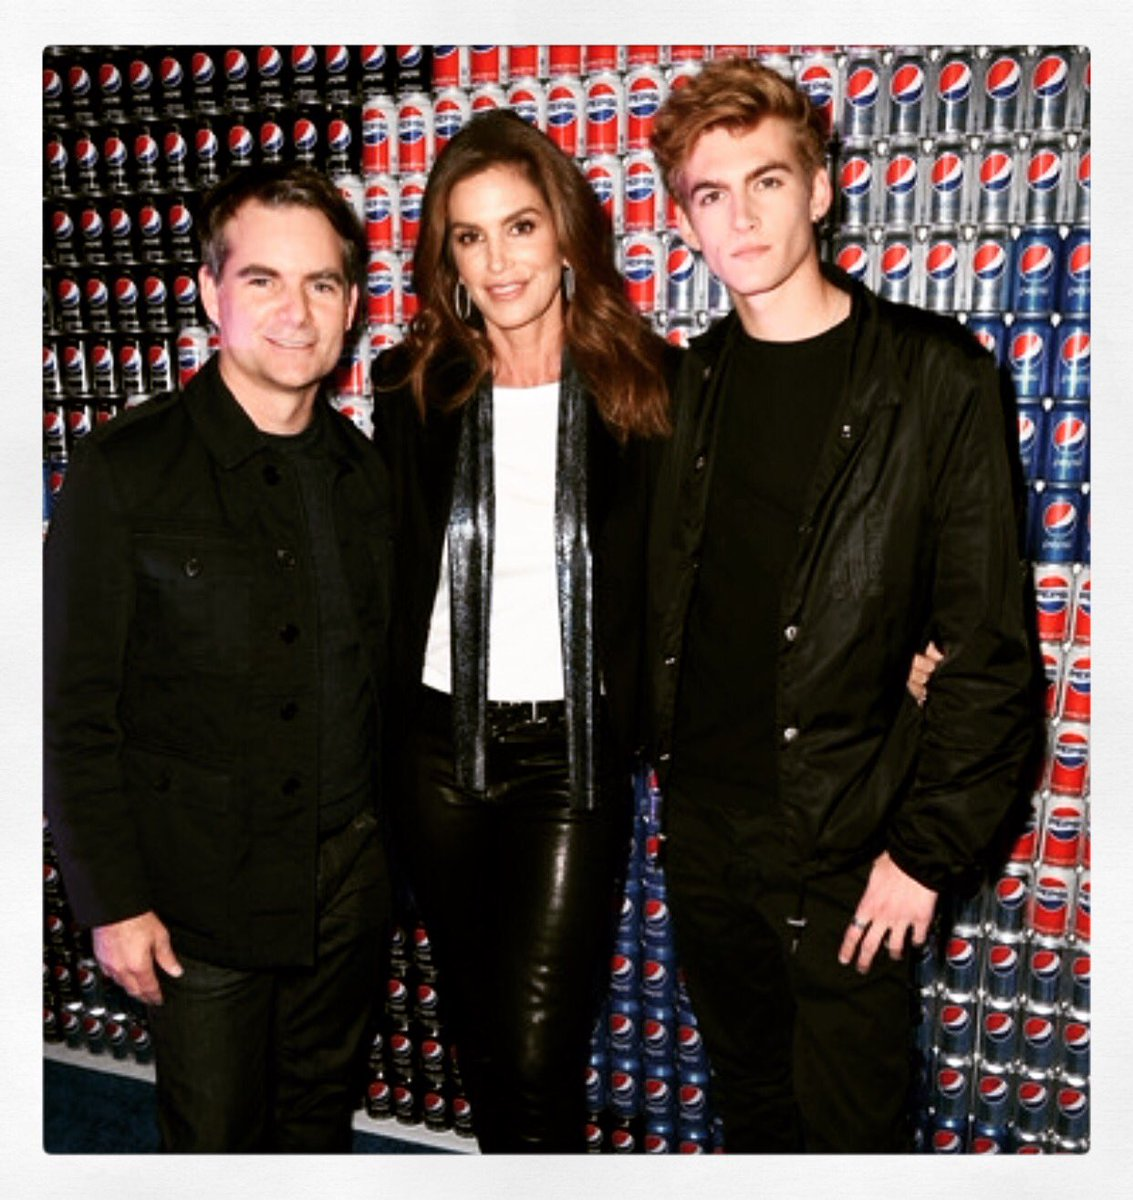 RT @ivandebosch: Pretty cool! Pepsi Super Bowl 2018 @JeffGordonWeb @CindyCrawford @PresleyGerber  @pepsi https://t.co/plZeFYC9MJ